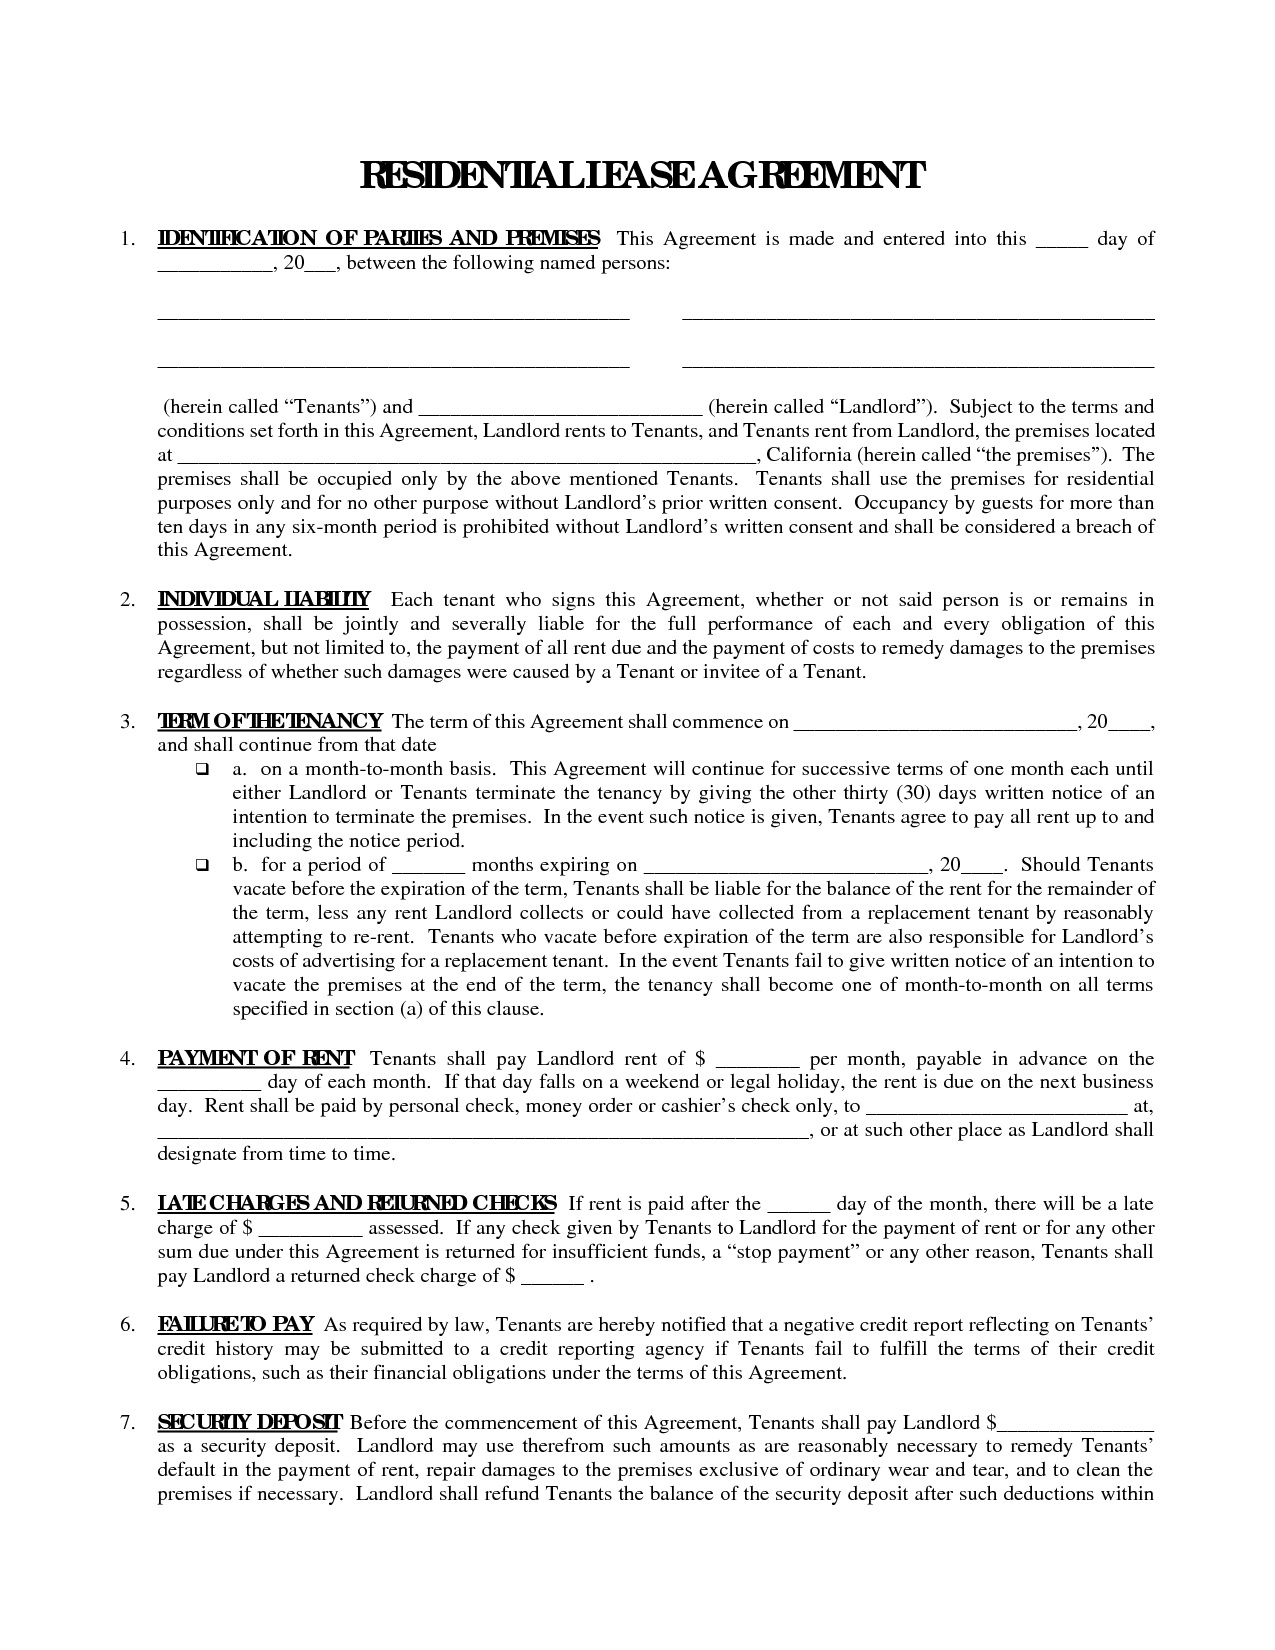 Printable Residential Free House Lease Agreement   Residential Lease - Blank Lease Agreement Free Printable